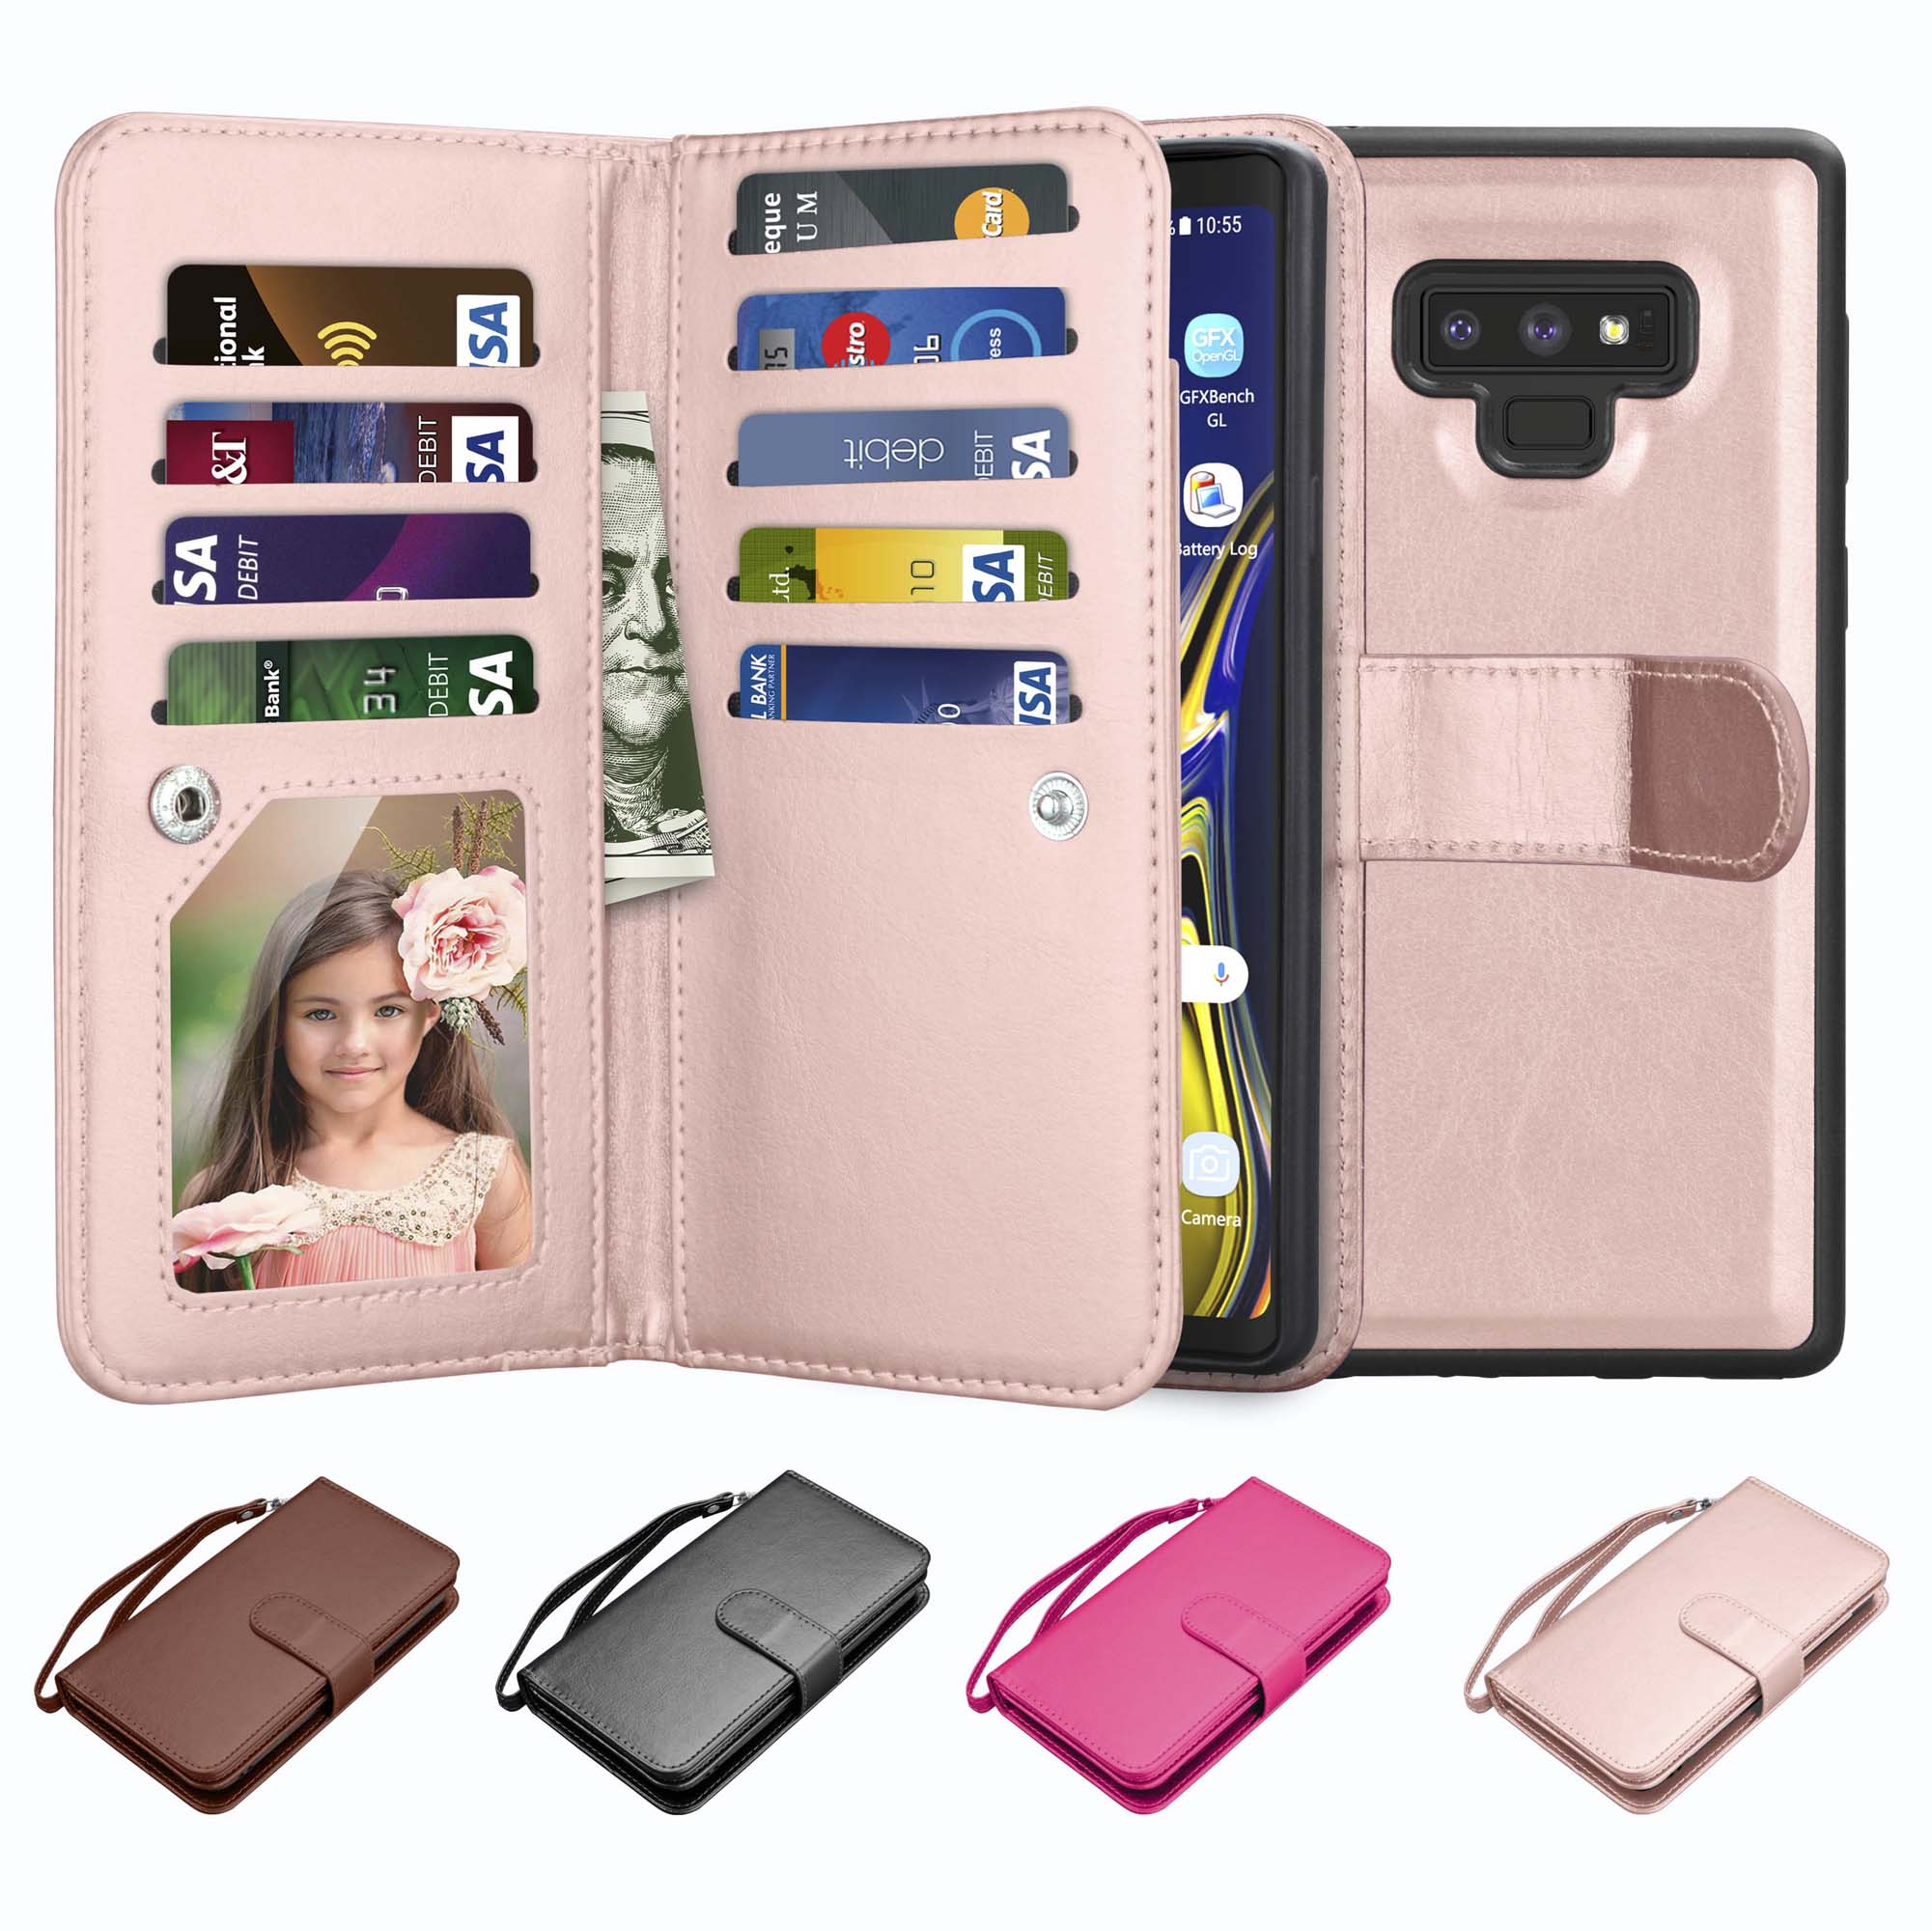 Galaxy Note 9 Case, Note 9 Wallet Case, Njjex Luxury PU Leather Wallet Case with ID&Card Holder Slot Detachable Magnetic Hard Case & Kickstand Case For Samsung Galaxy Note 9 -Rose Gold